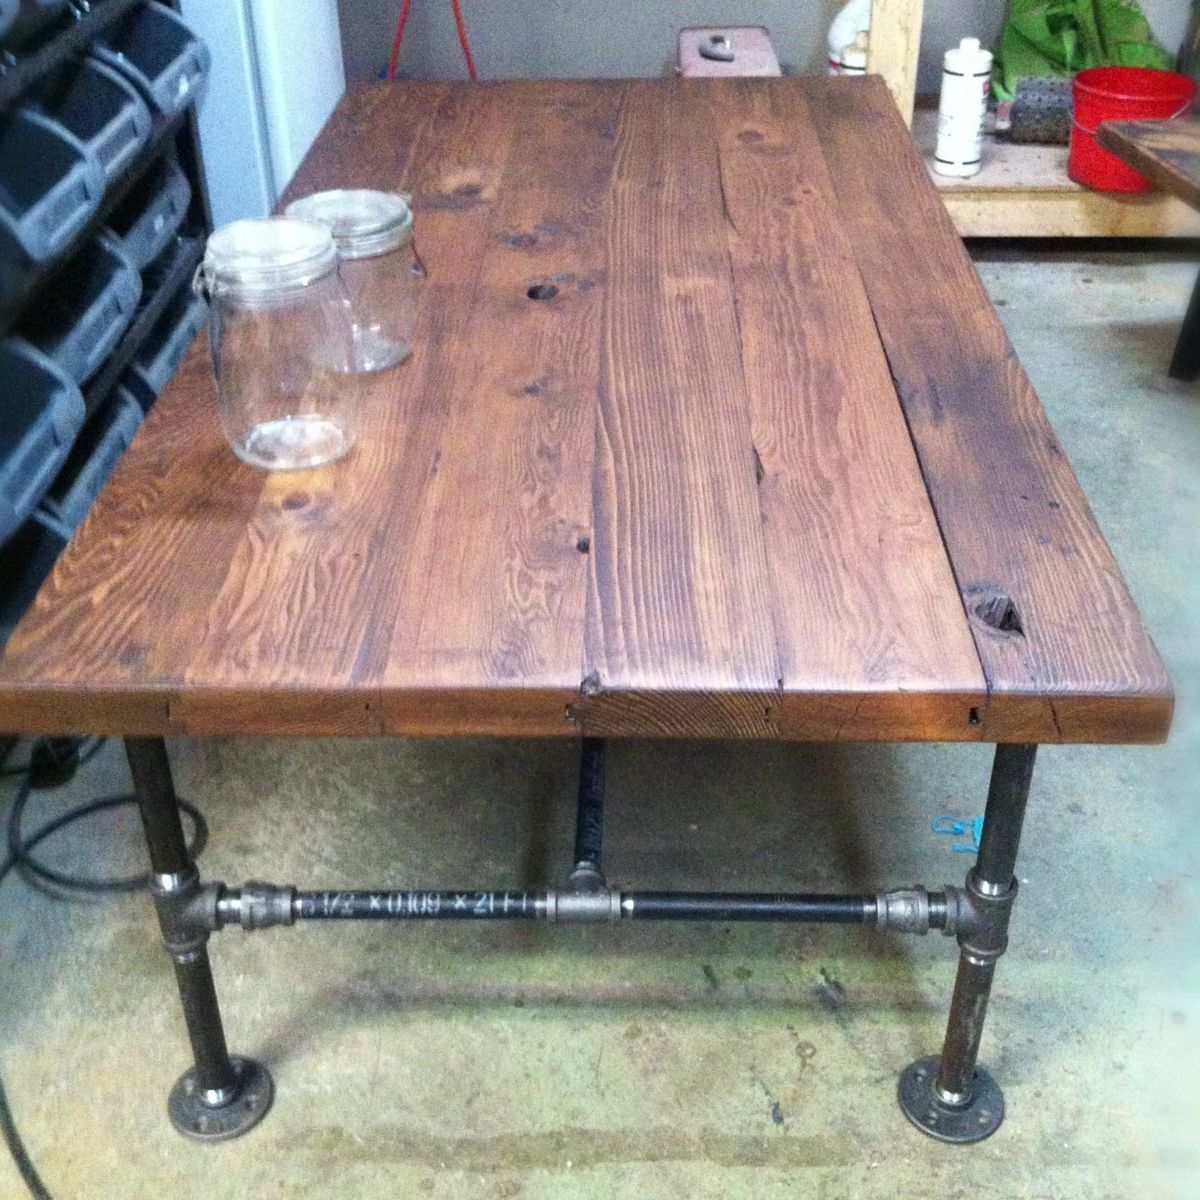 Custom made barn wood cast iron pipe coffee table by js reclaimed custom made barn wood cast iron pipe coffee table by js reclaimed wood custom furniture custommade watchthetrailerfo